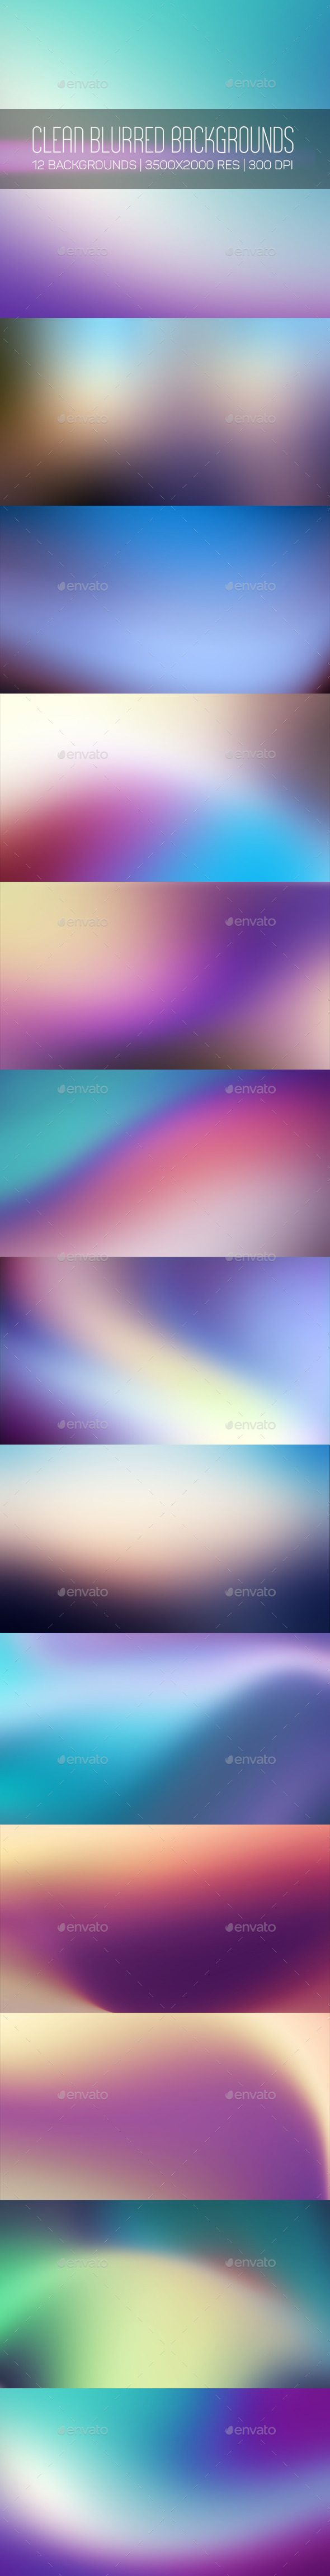 Clean Blurred Backgrounds - Abstract Backgrounds